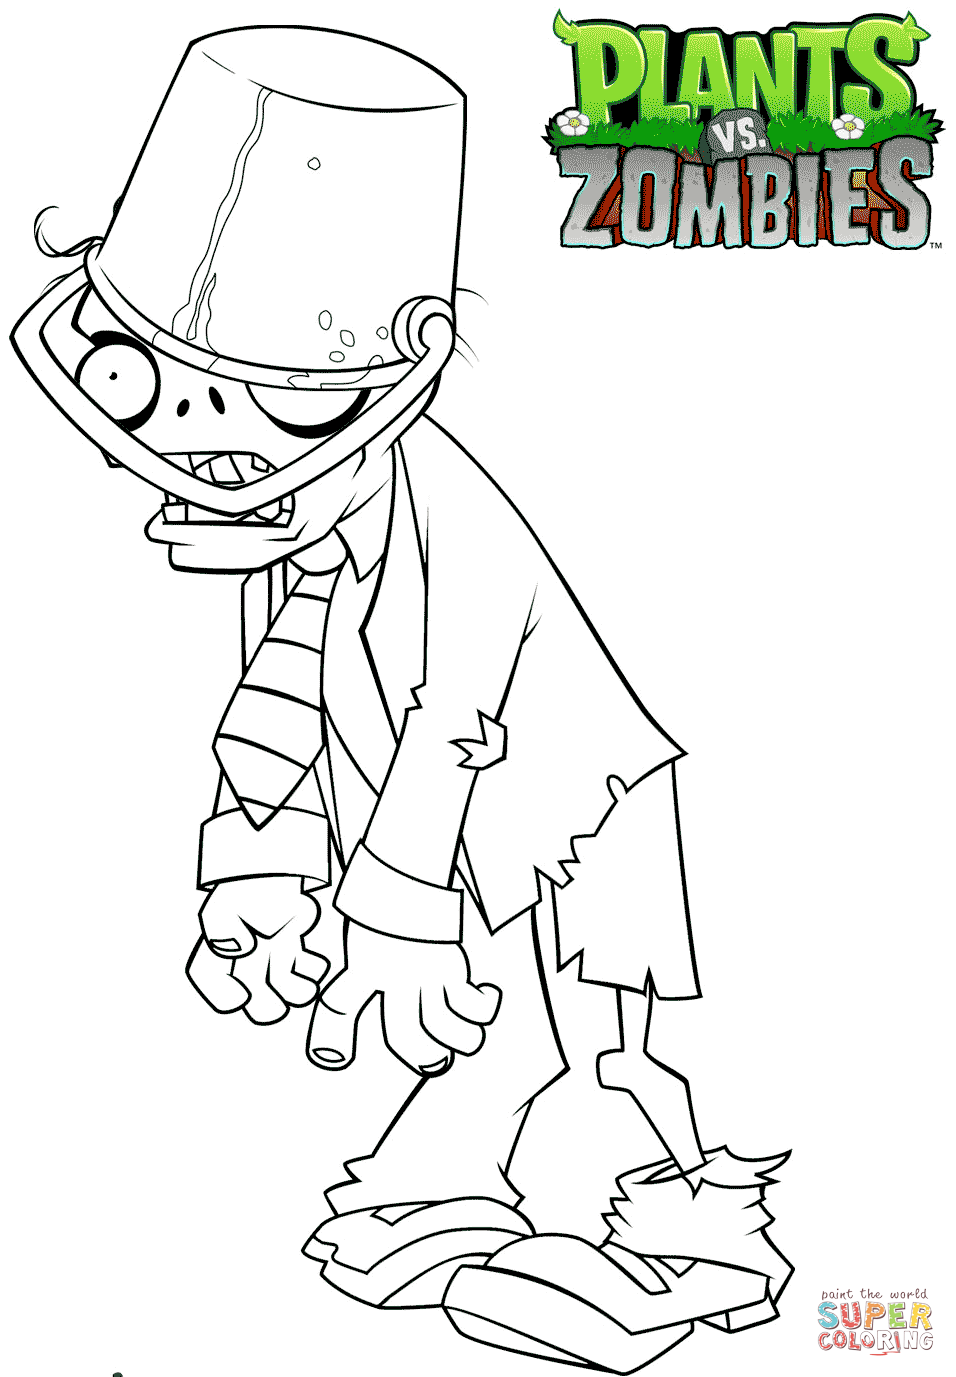 Printable coloring pages zombie - Zombies Buckethead Zombie Coloring Pages To View Printable Version Or Color